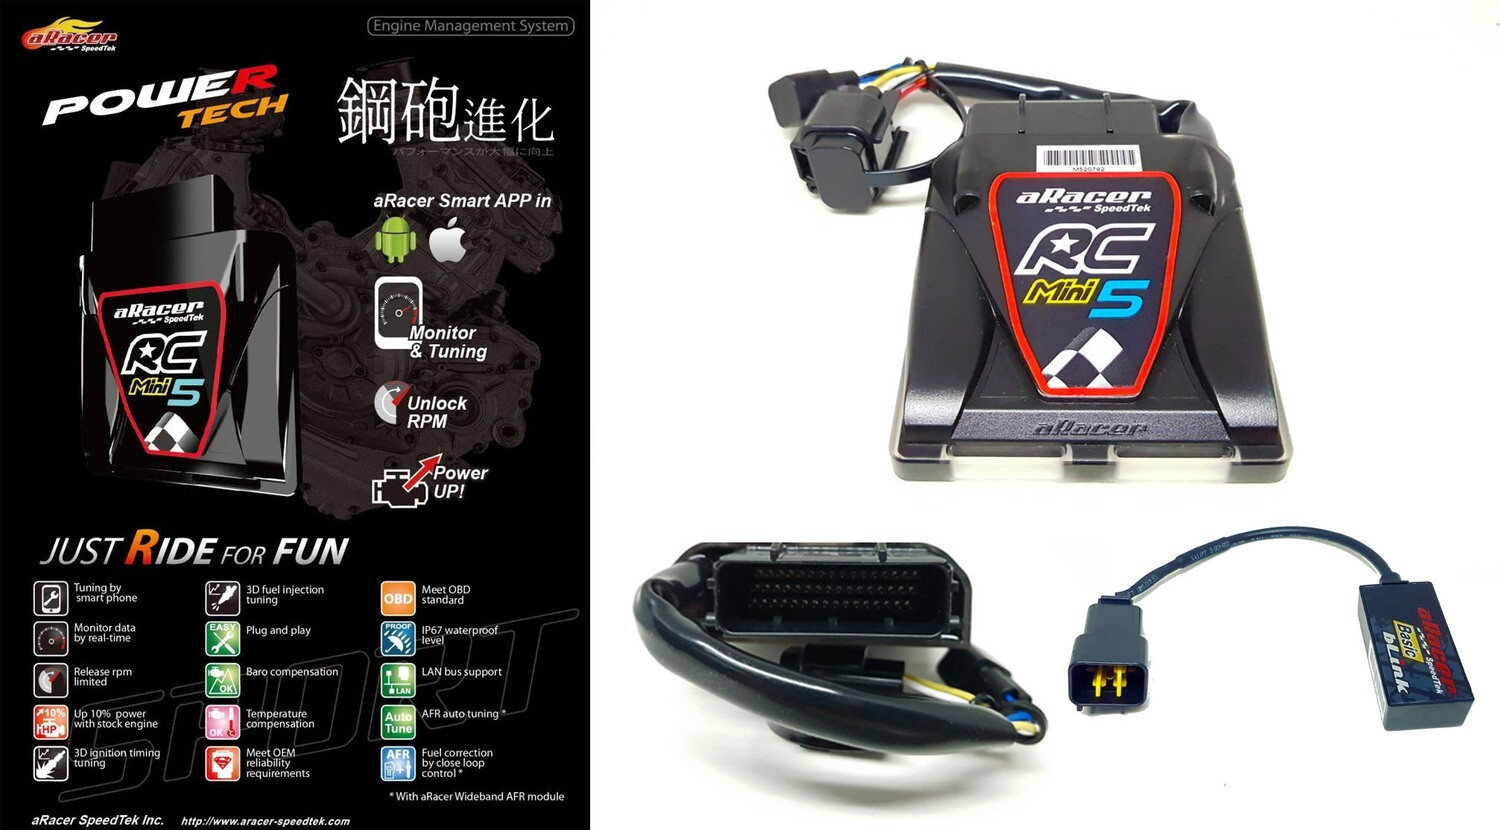 ARACER speedtek ECU RC Mini 5 Z125